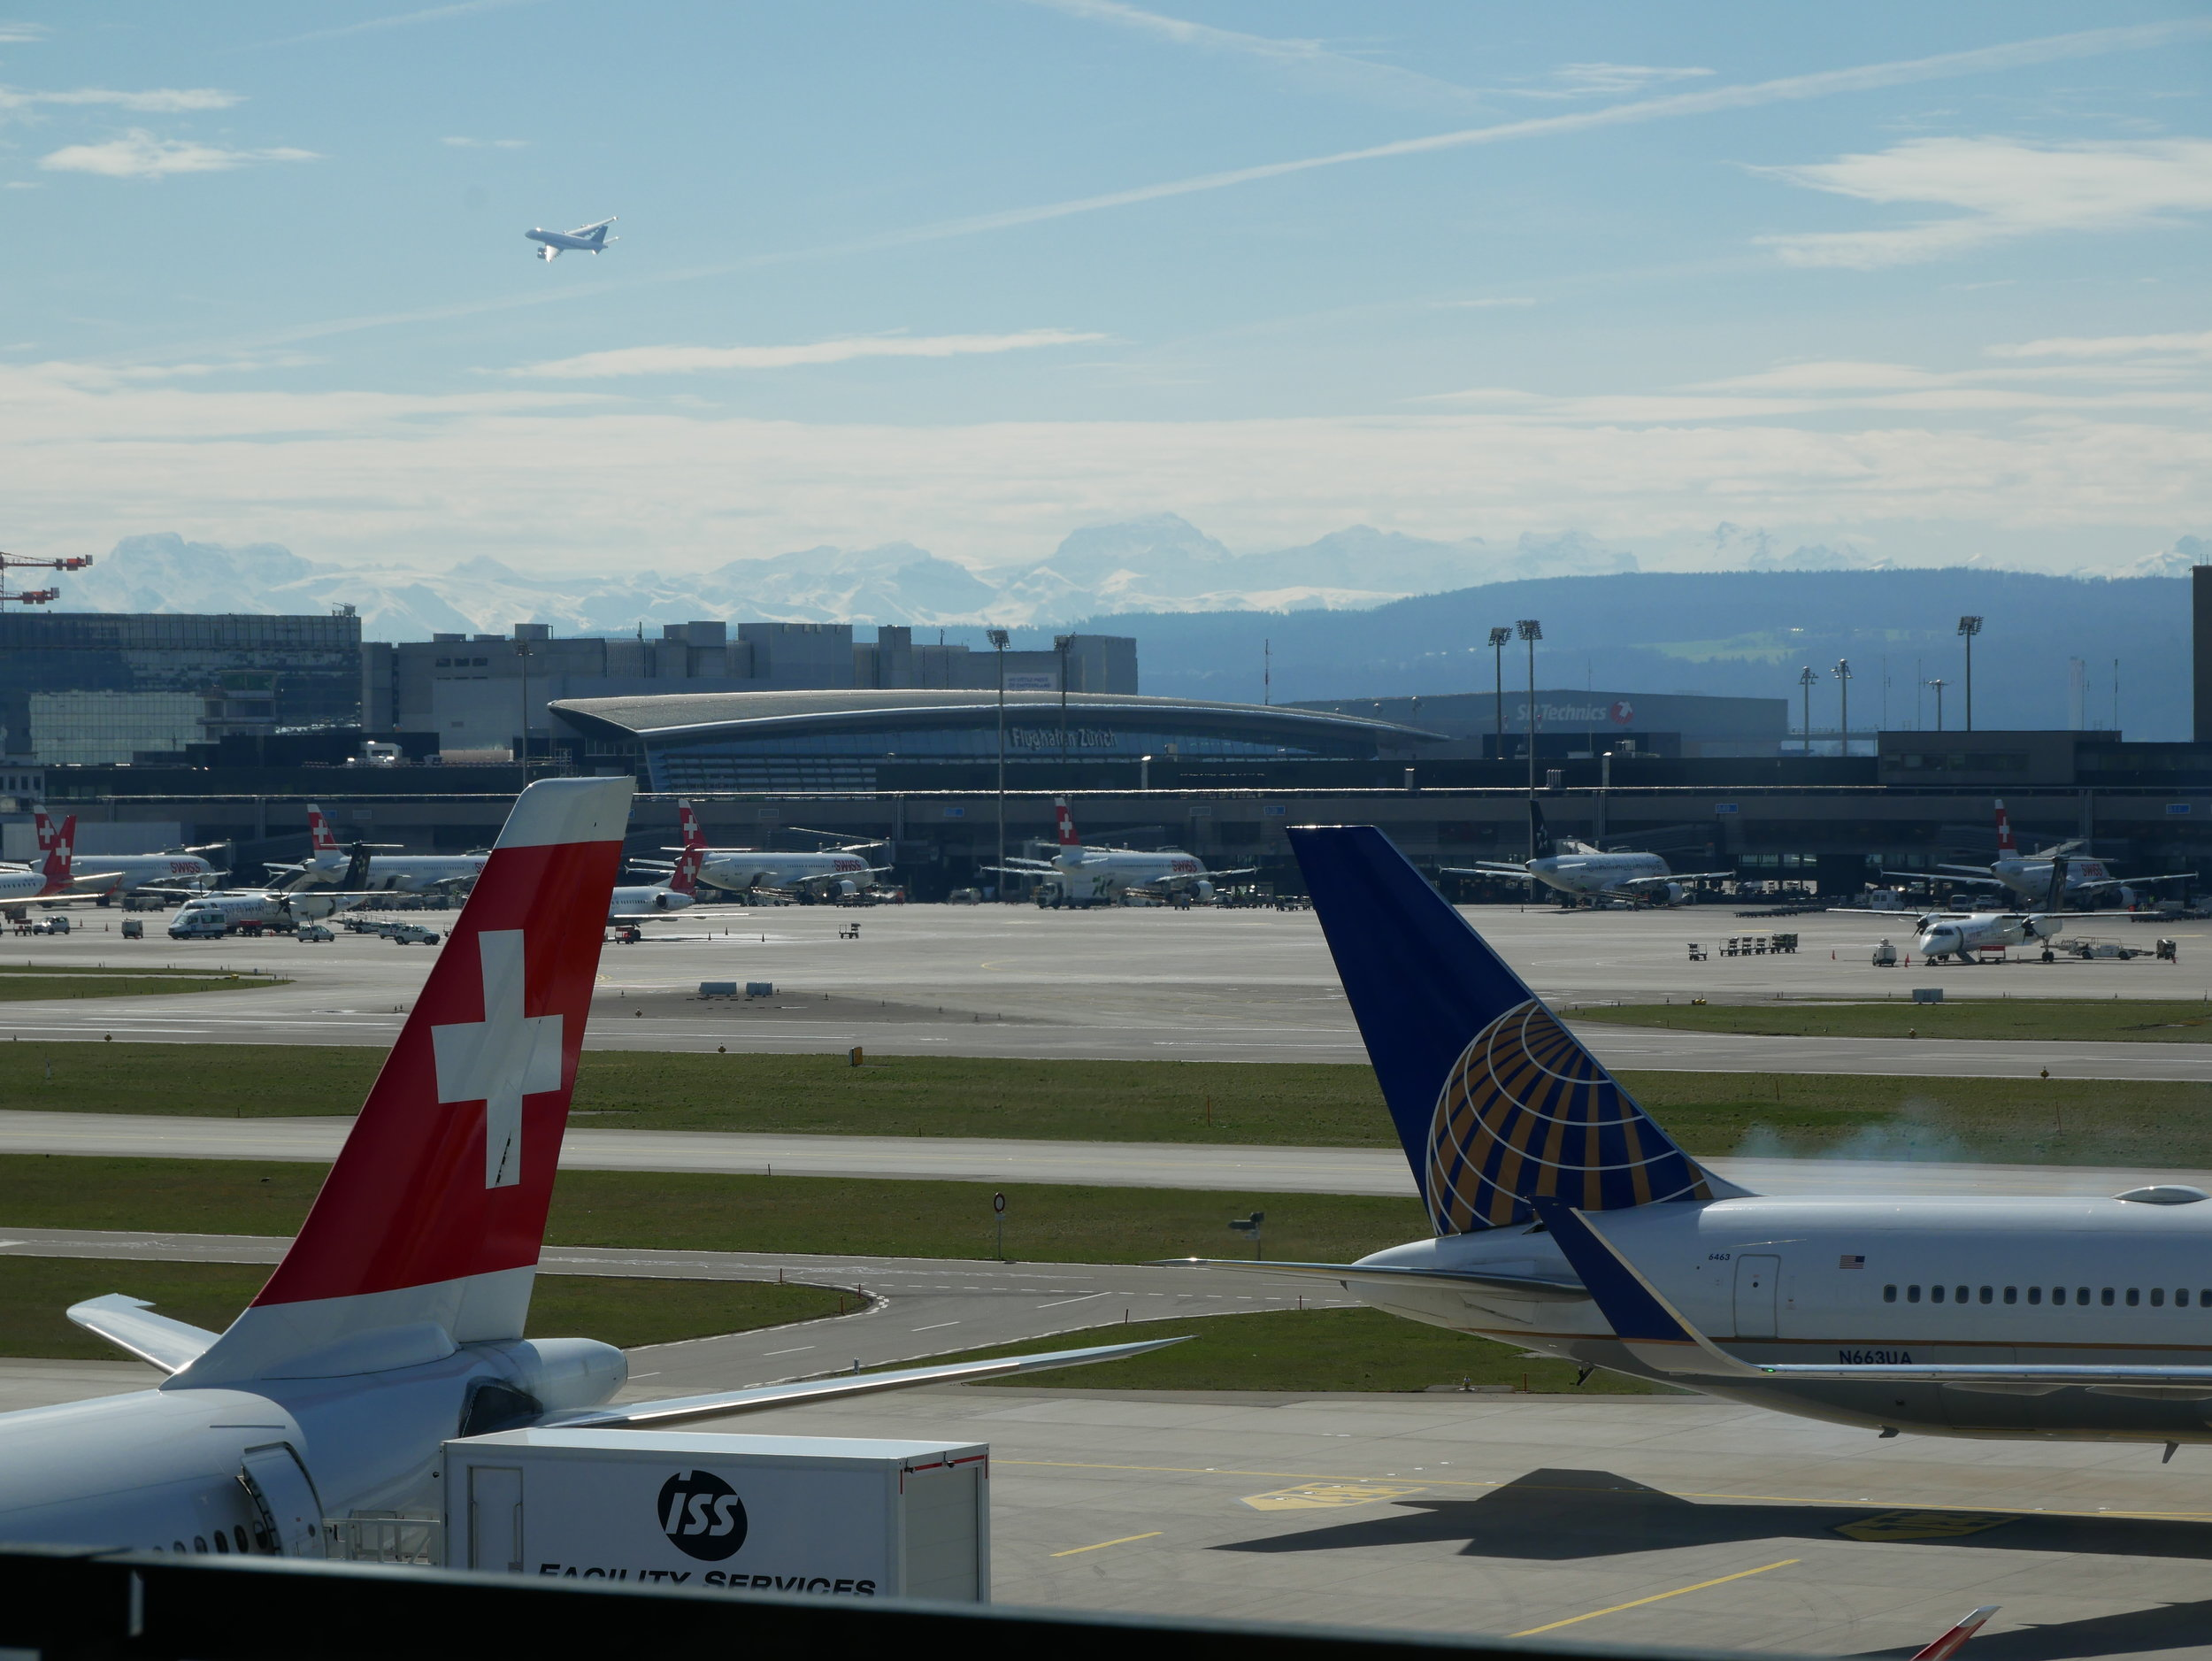 ZRH Senator Lounge E Gates views 1